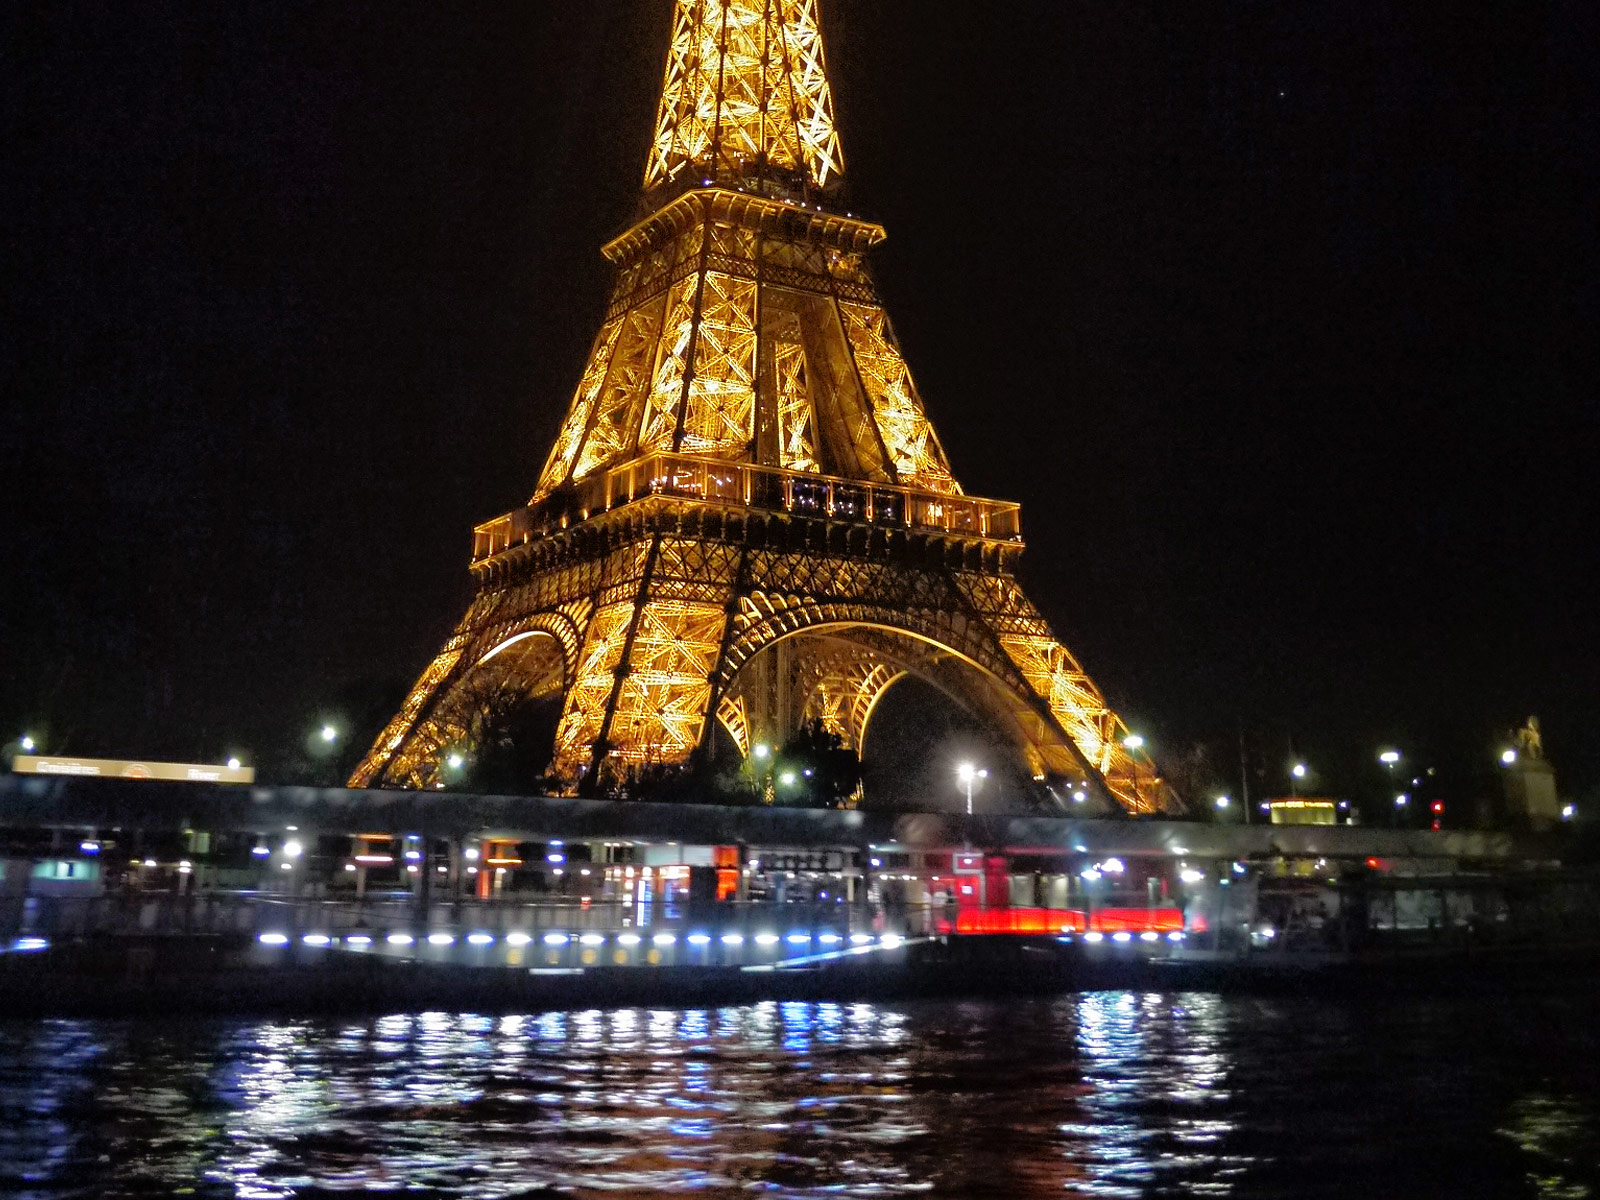 The Brightly Illuminated Eiffel Tower at Night - Paris, France